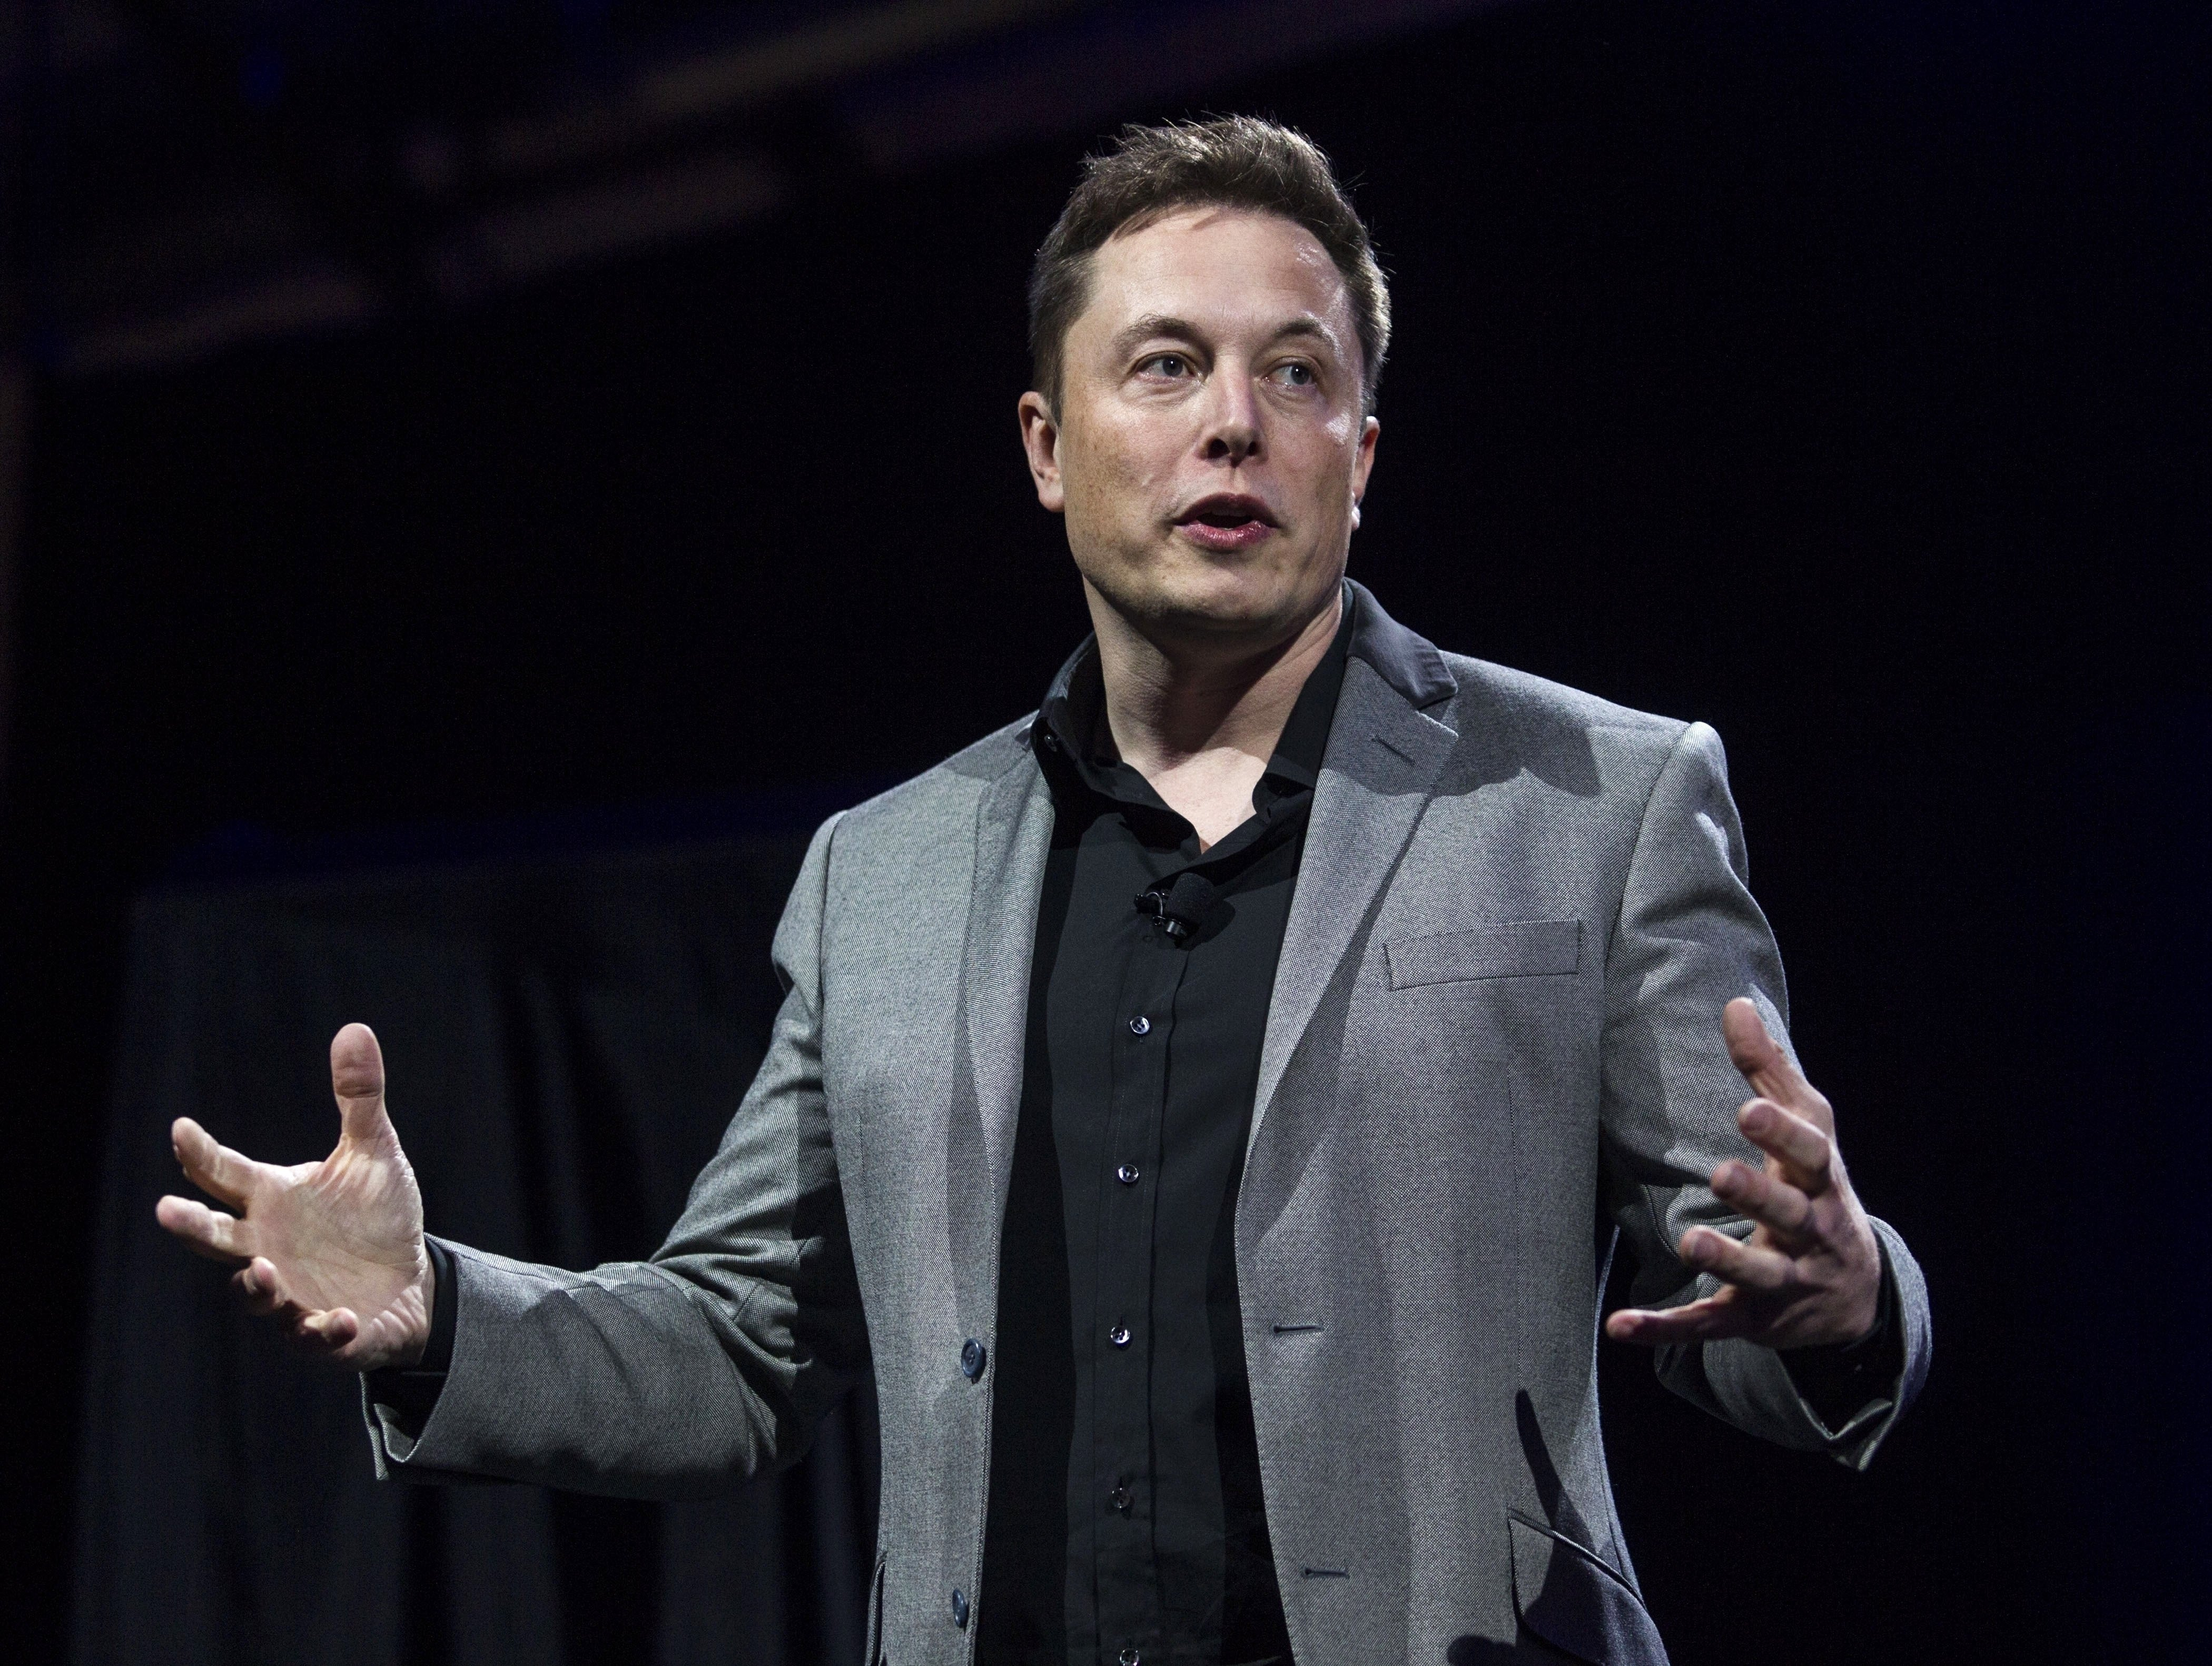 Who is Elon Musk, what's the Tesla founder's net worth, is he dating Amber Heard and when is Falcon Heavy taking off?